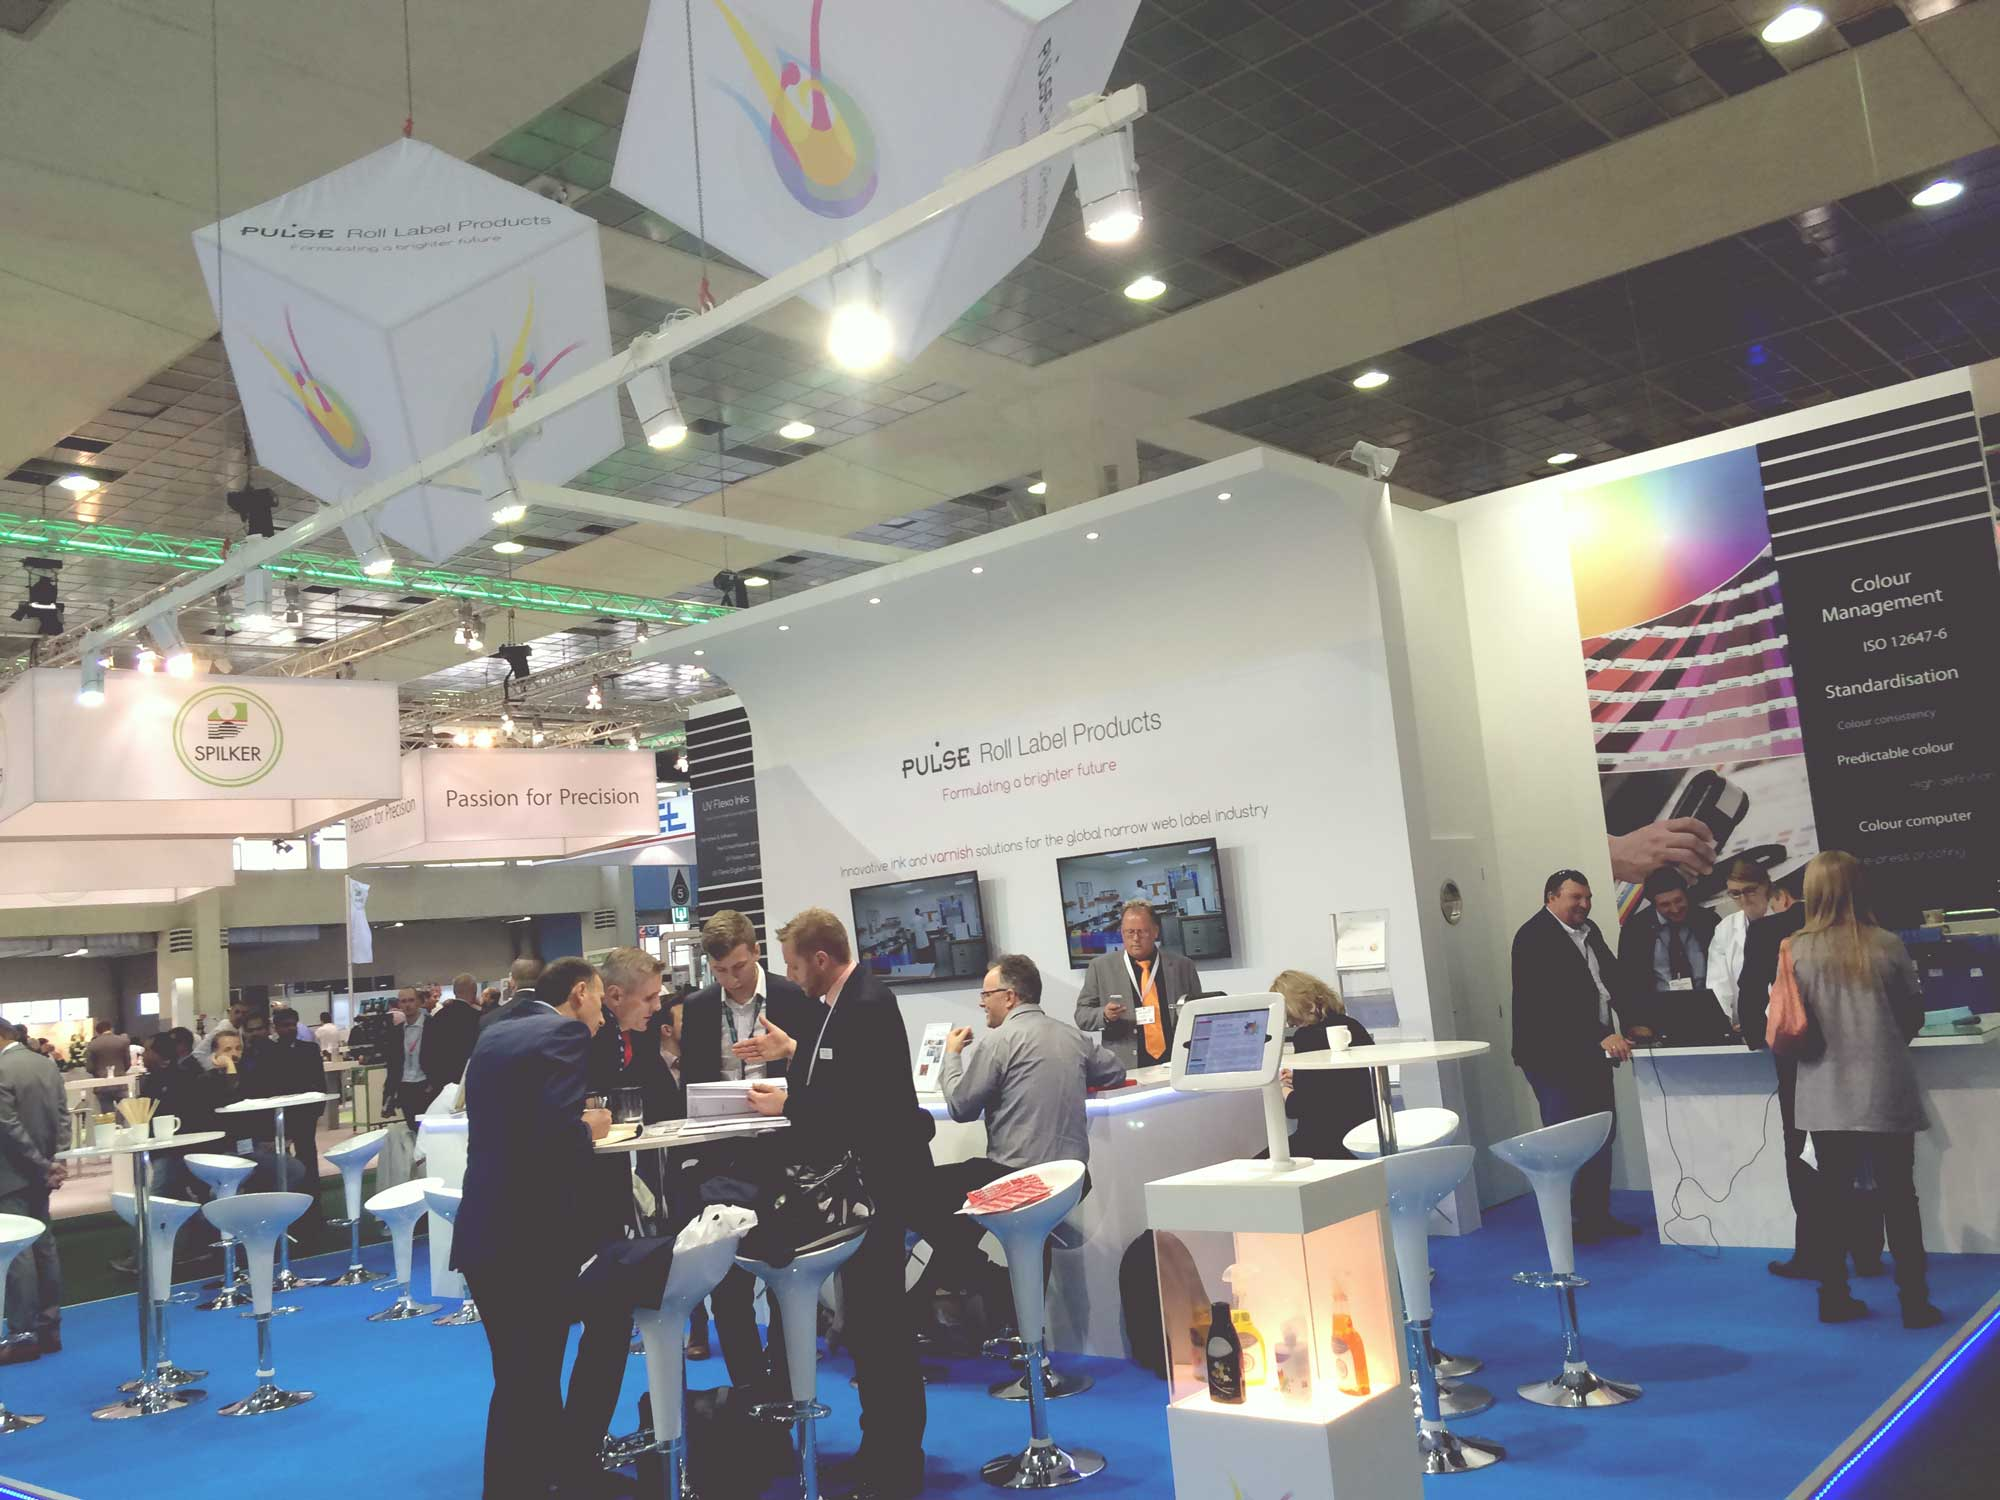 Pulse at LabelExpo 2015